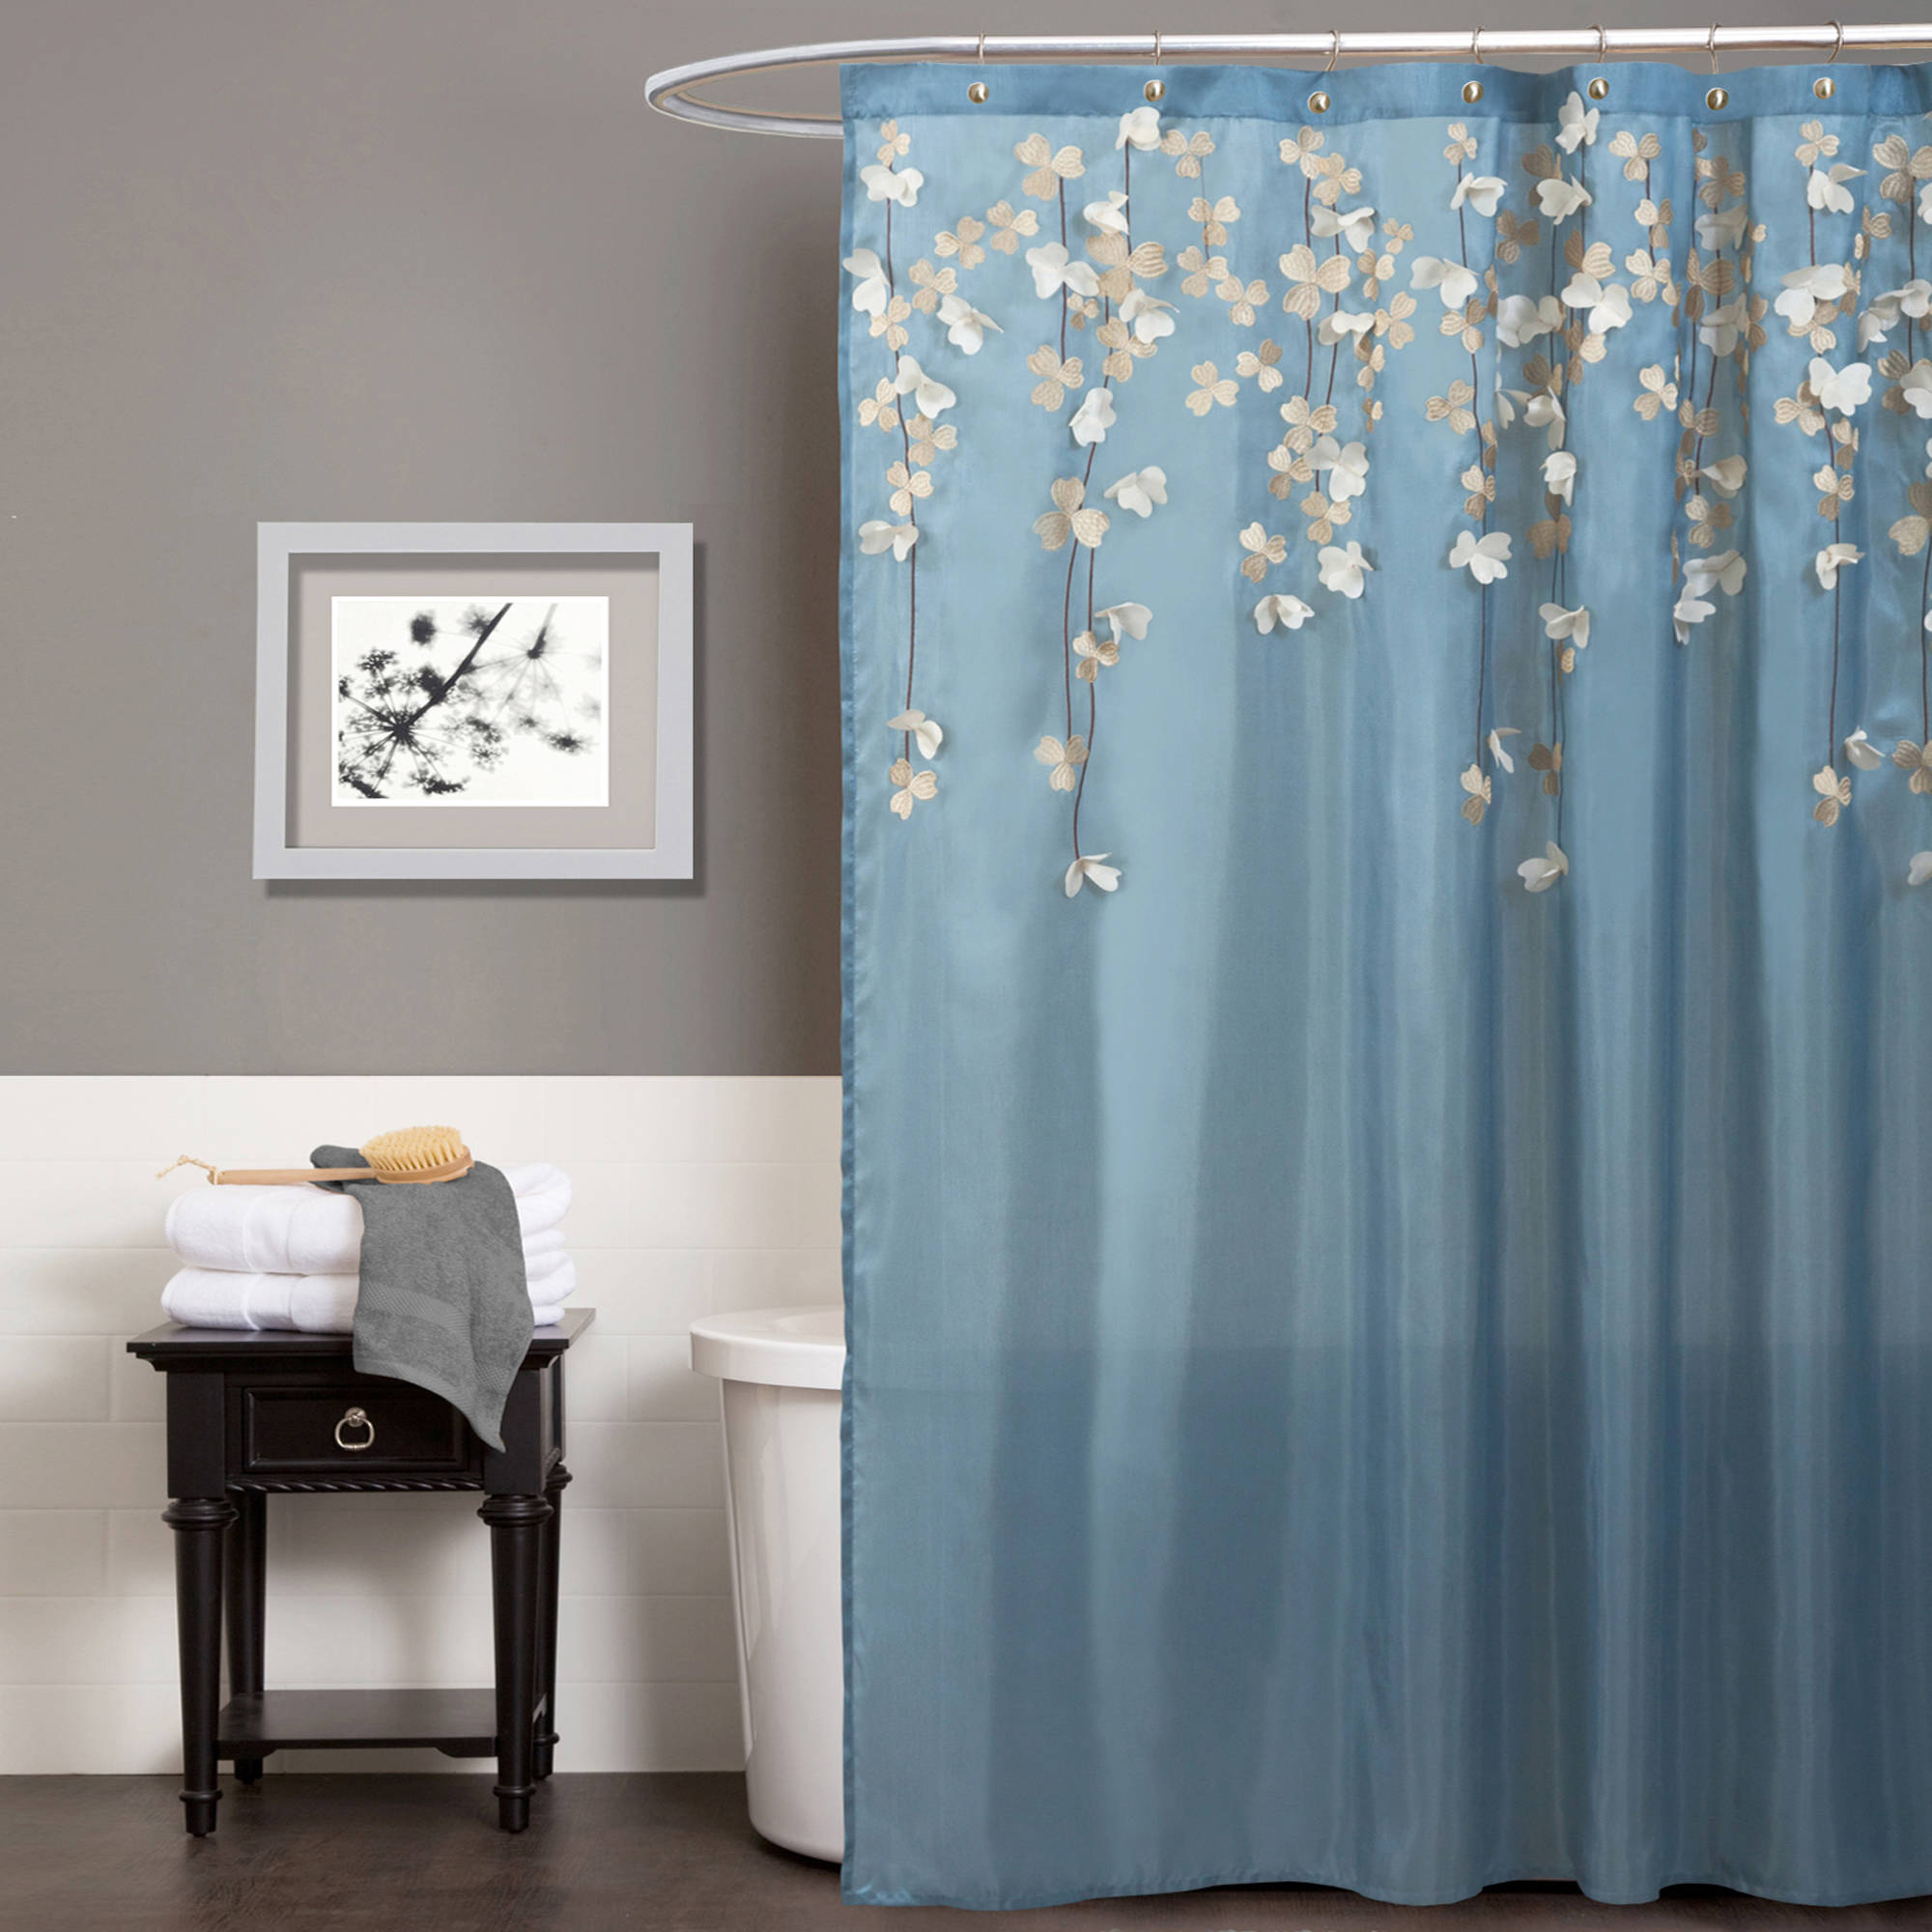 Shower Curtains Walmart in sizing 2000 X 2000